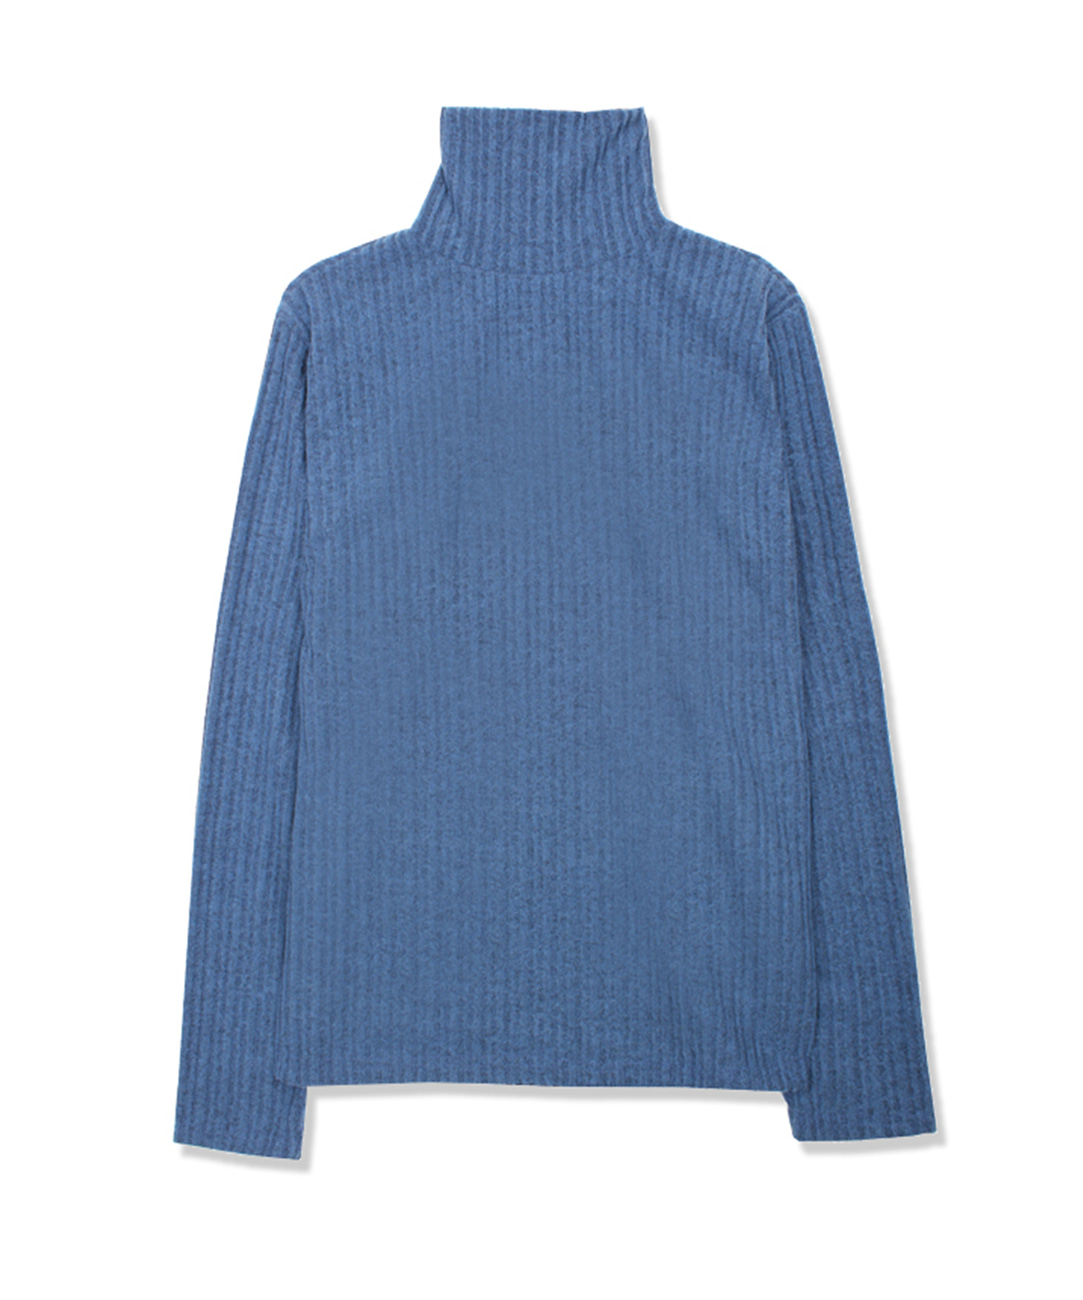 DWS LONG SLEEVE TURTLE NECK(BLUE)